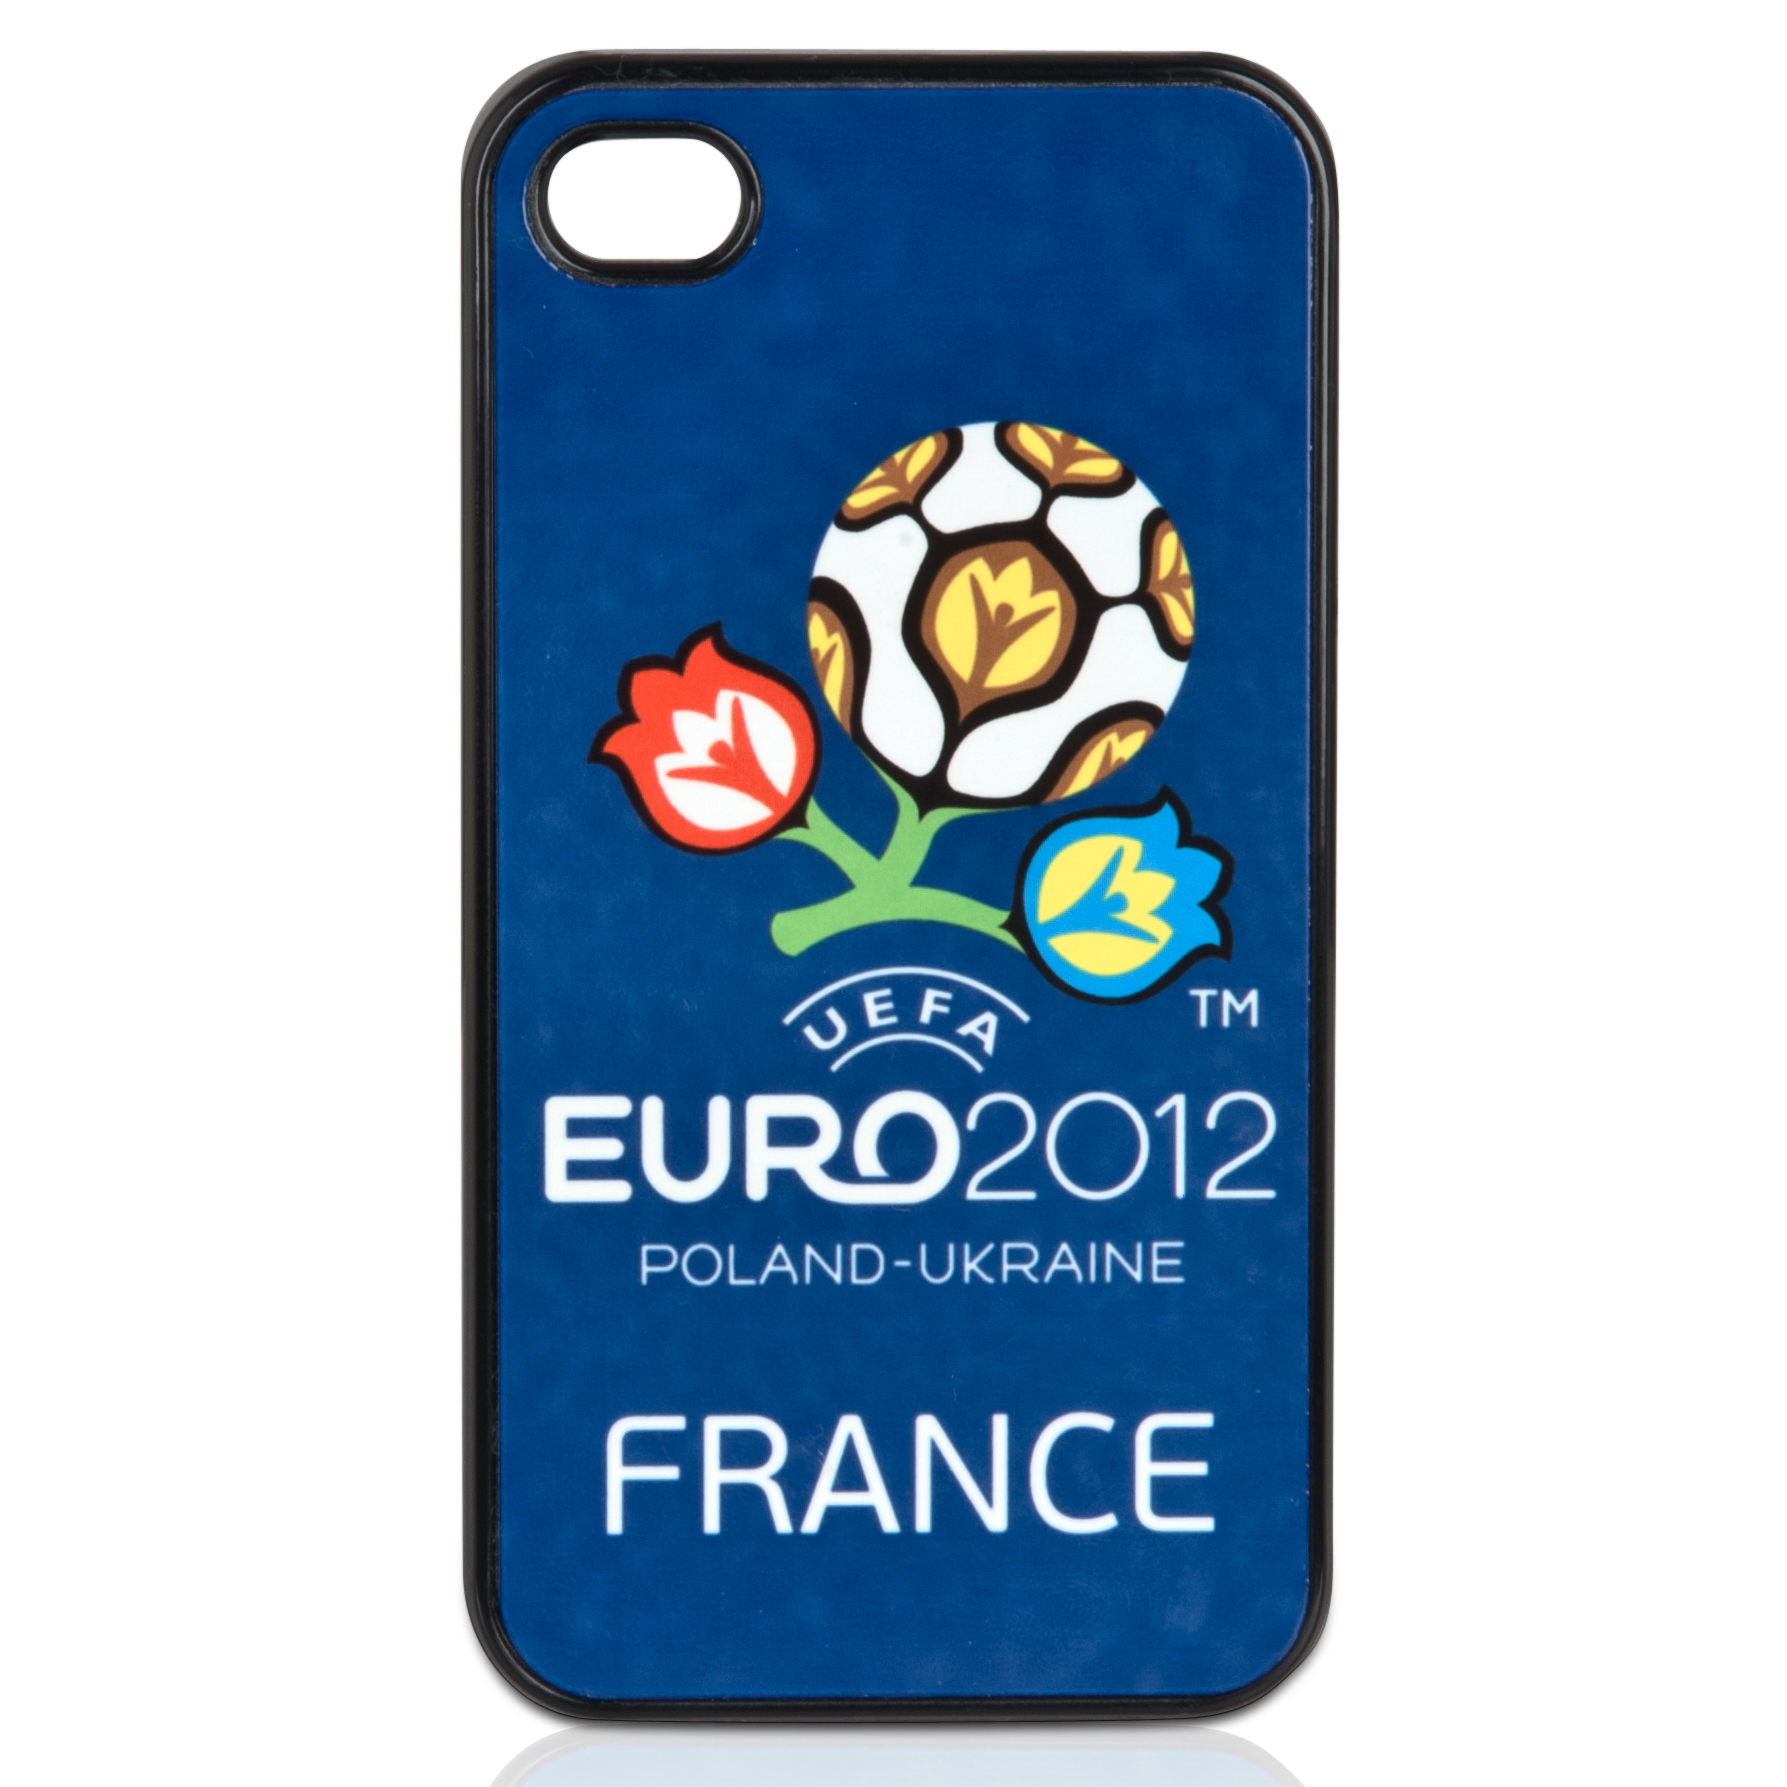 EURO 2012 Country Iphone 4 Cover - France